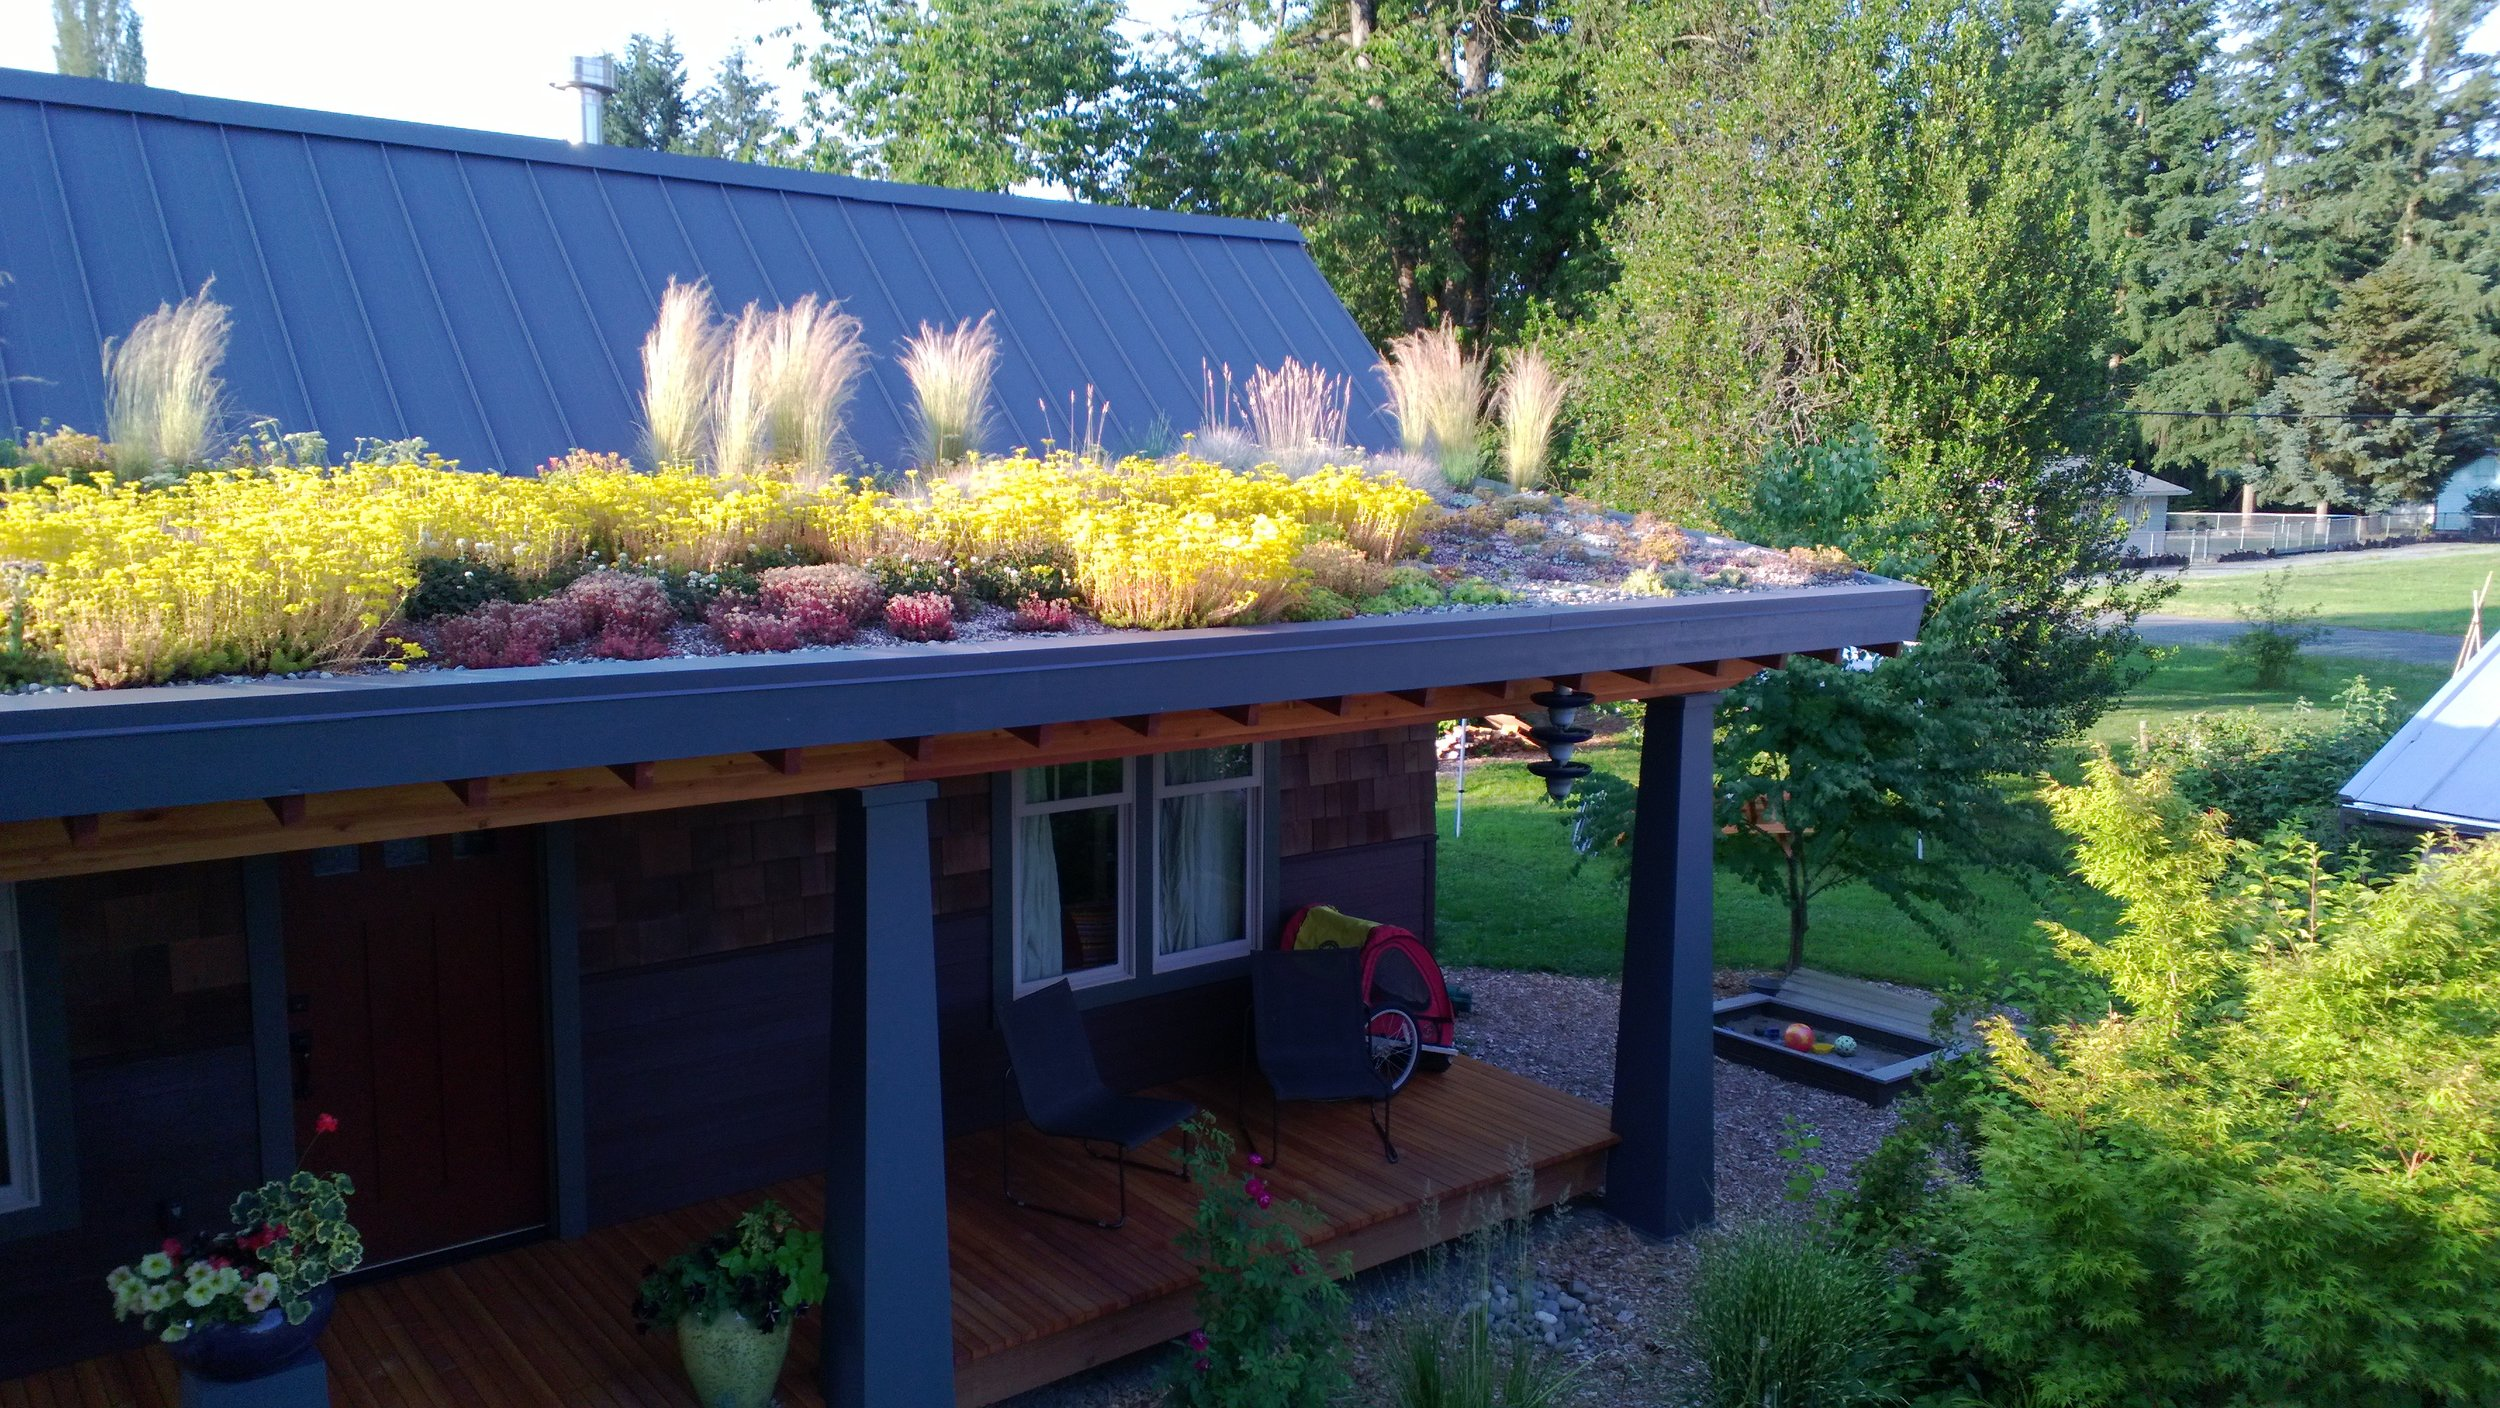 Toby designed and built this green roof on his home in Washington State.